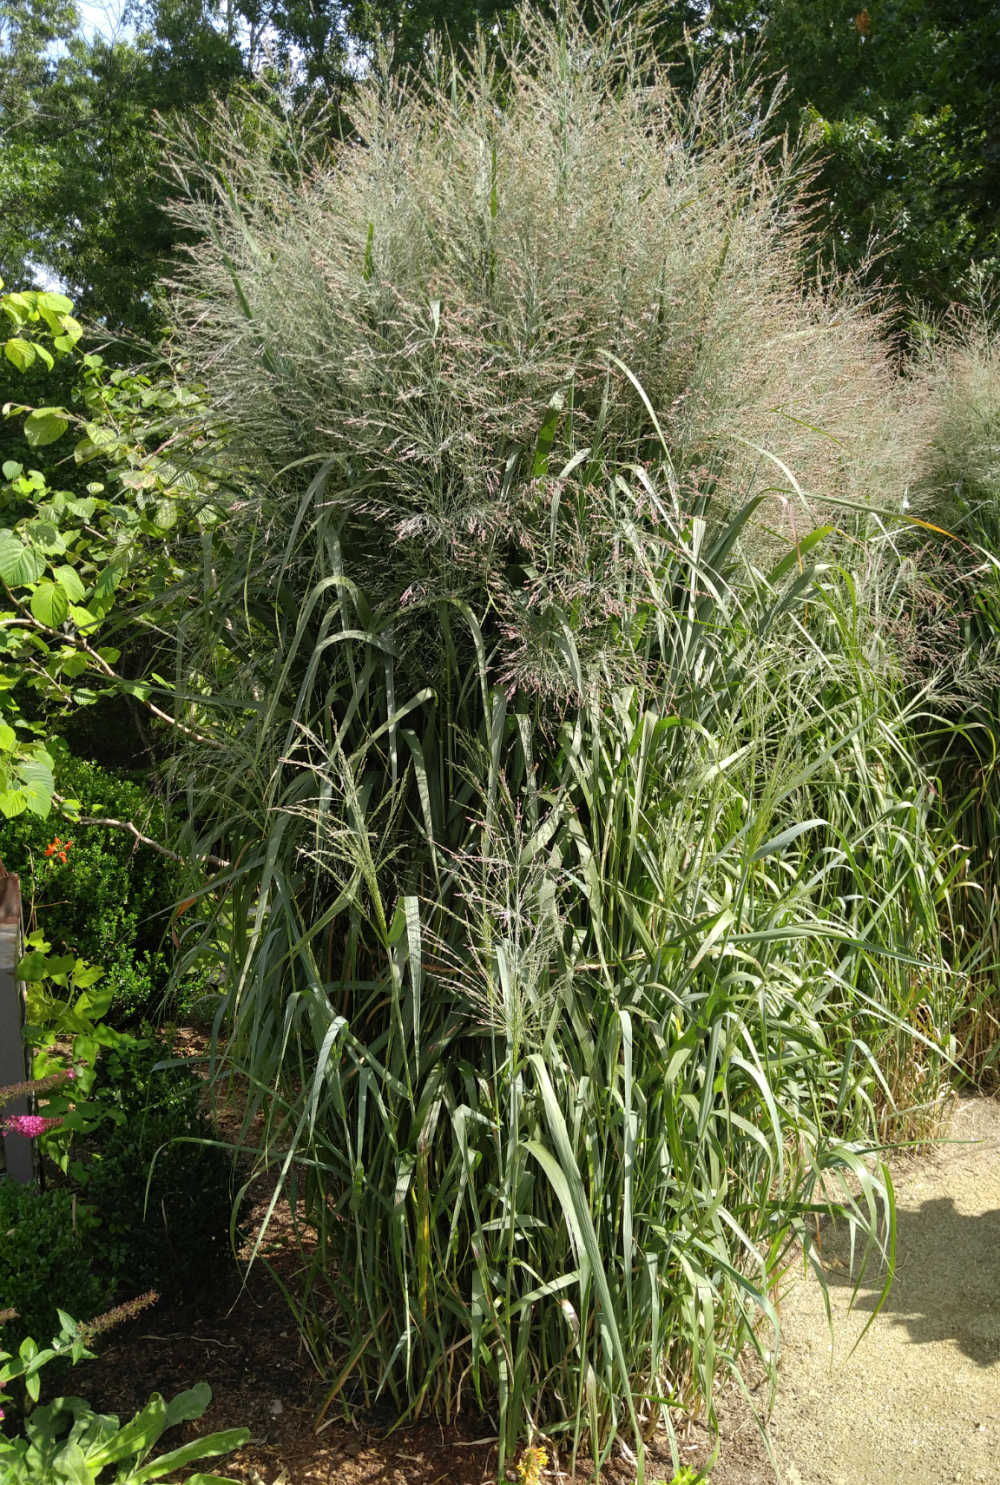 Japanese silver grass with feathery plumes on top.